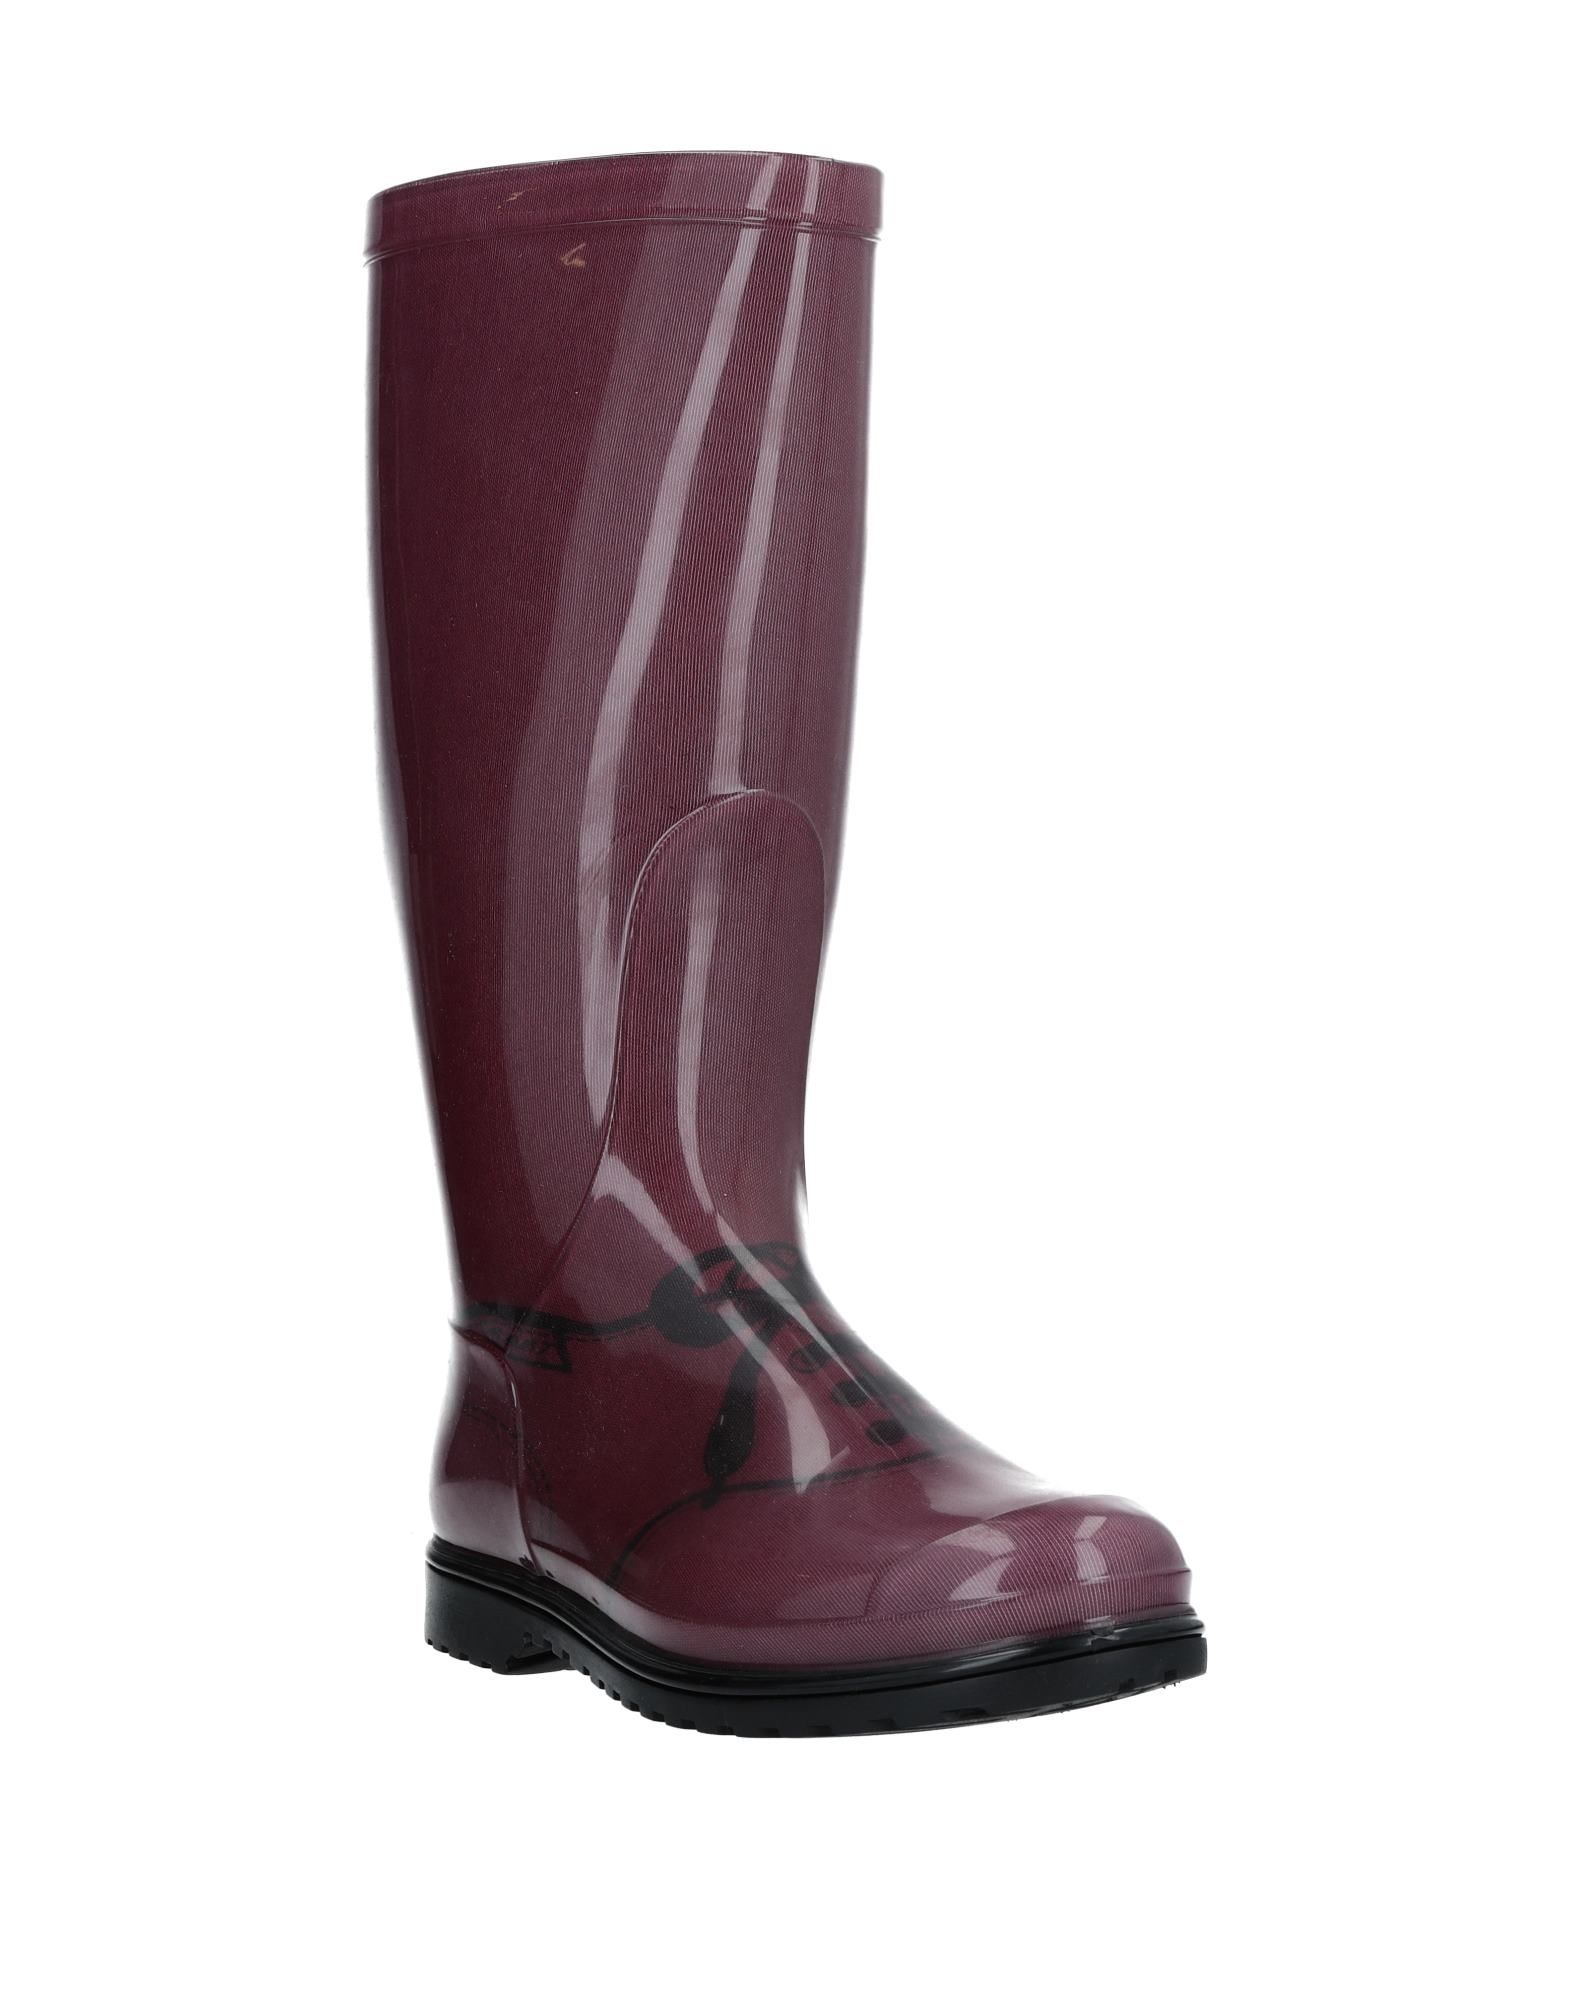 Marc By Marc Jacobs strapazierfähige Stiefel Damen  11520638QCGut aussehende strapazierfähige Jacobs Schuhe ca2291